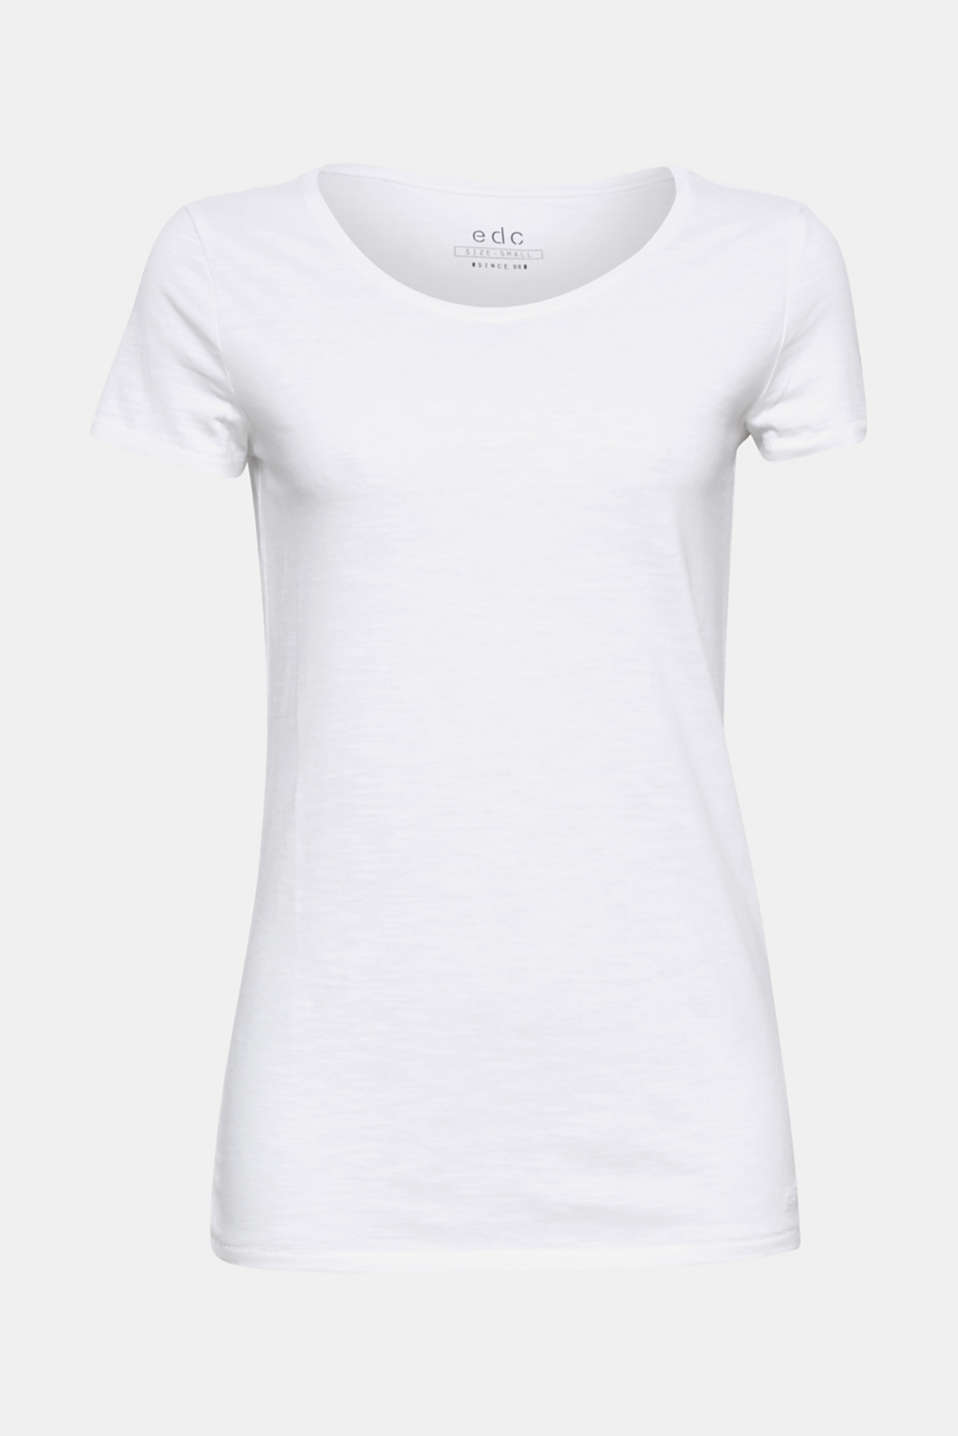 This slub T-shirt made of environmentally friendly, premium organic cotton is a basic for casual looks,